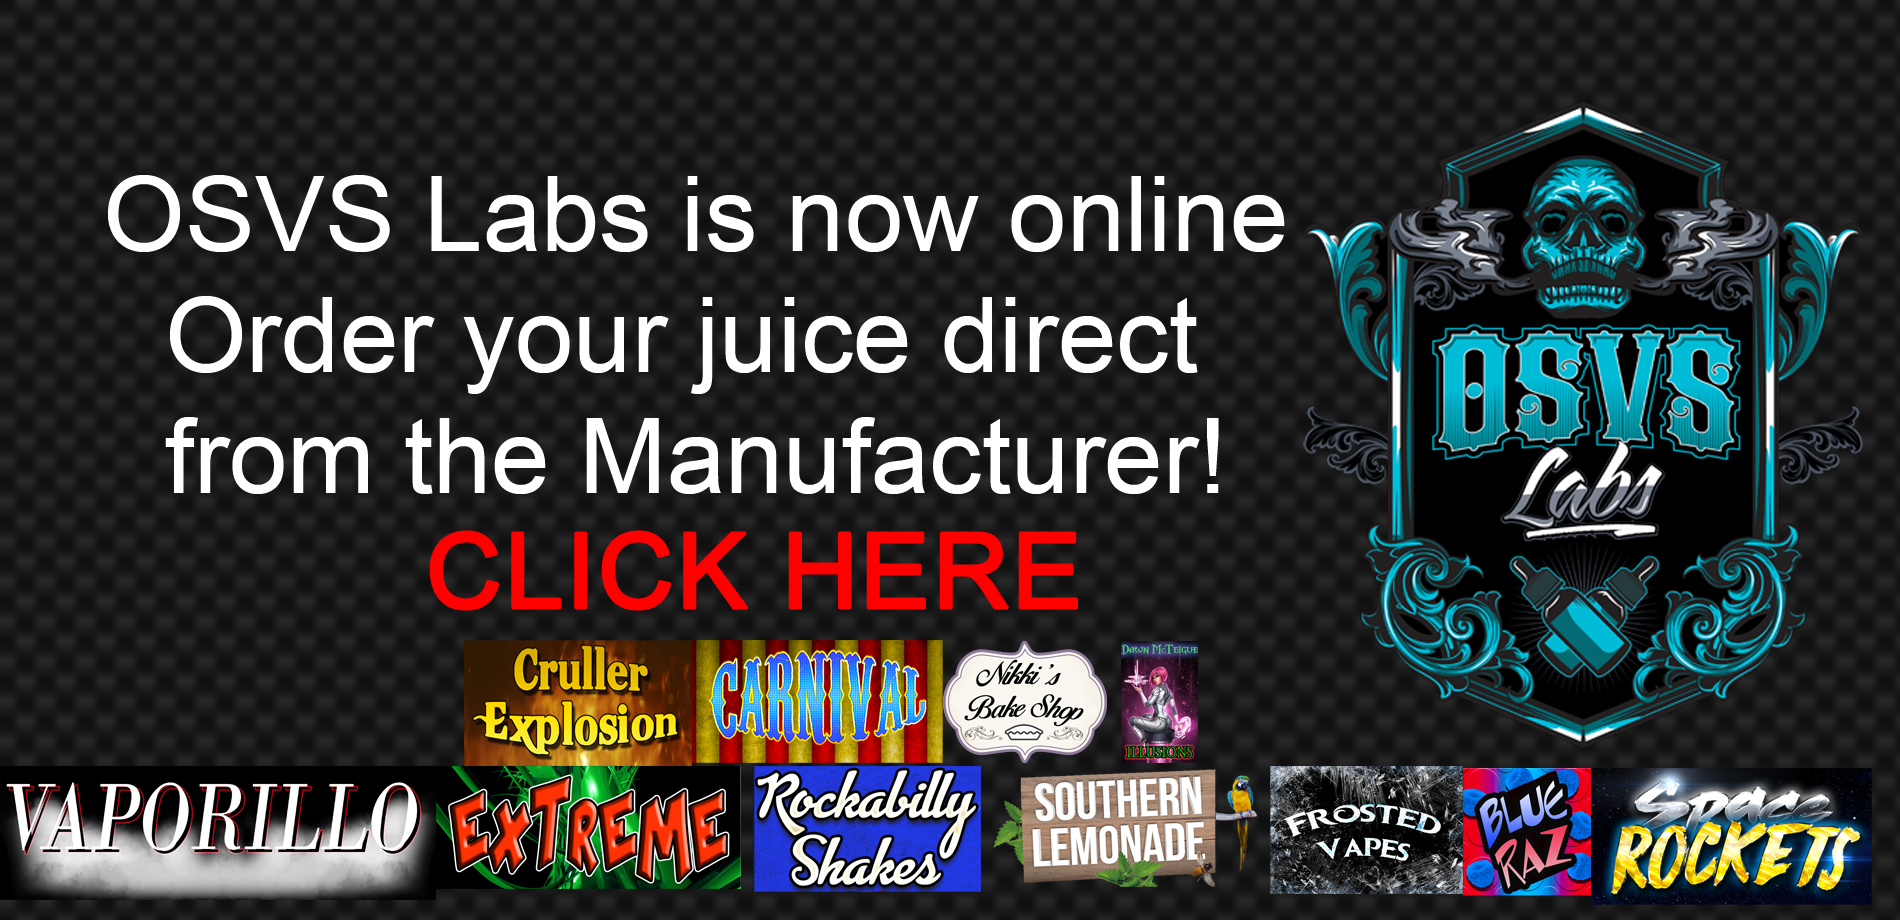 OSVS-Labs-Online-web